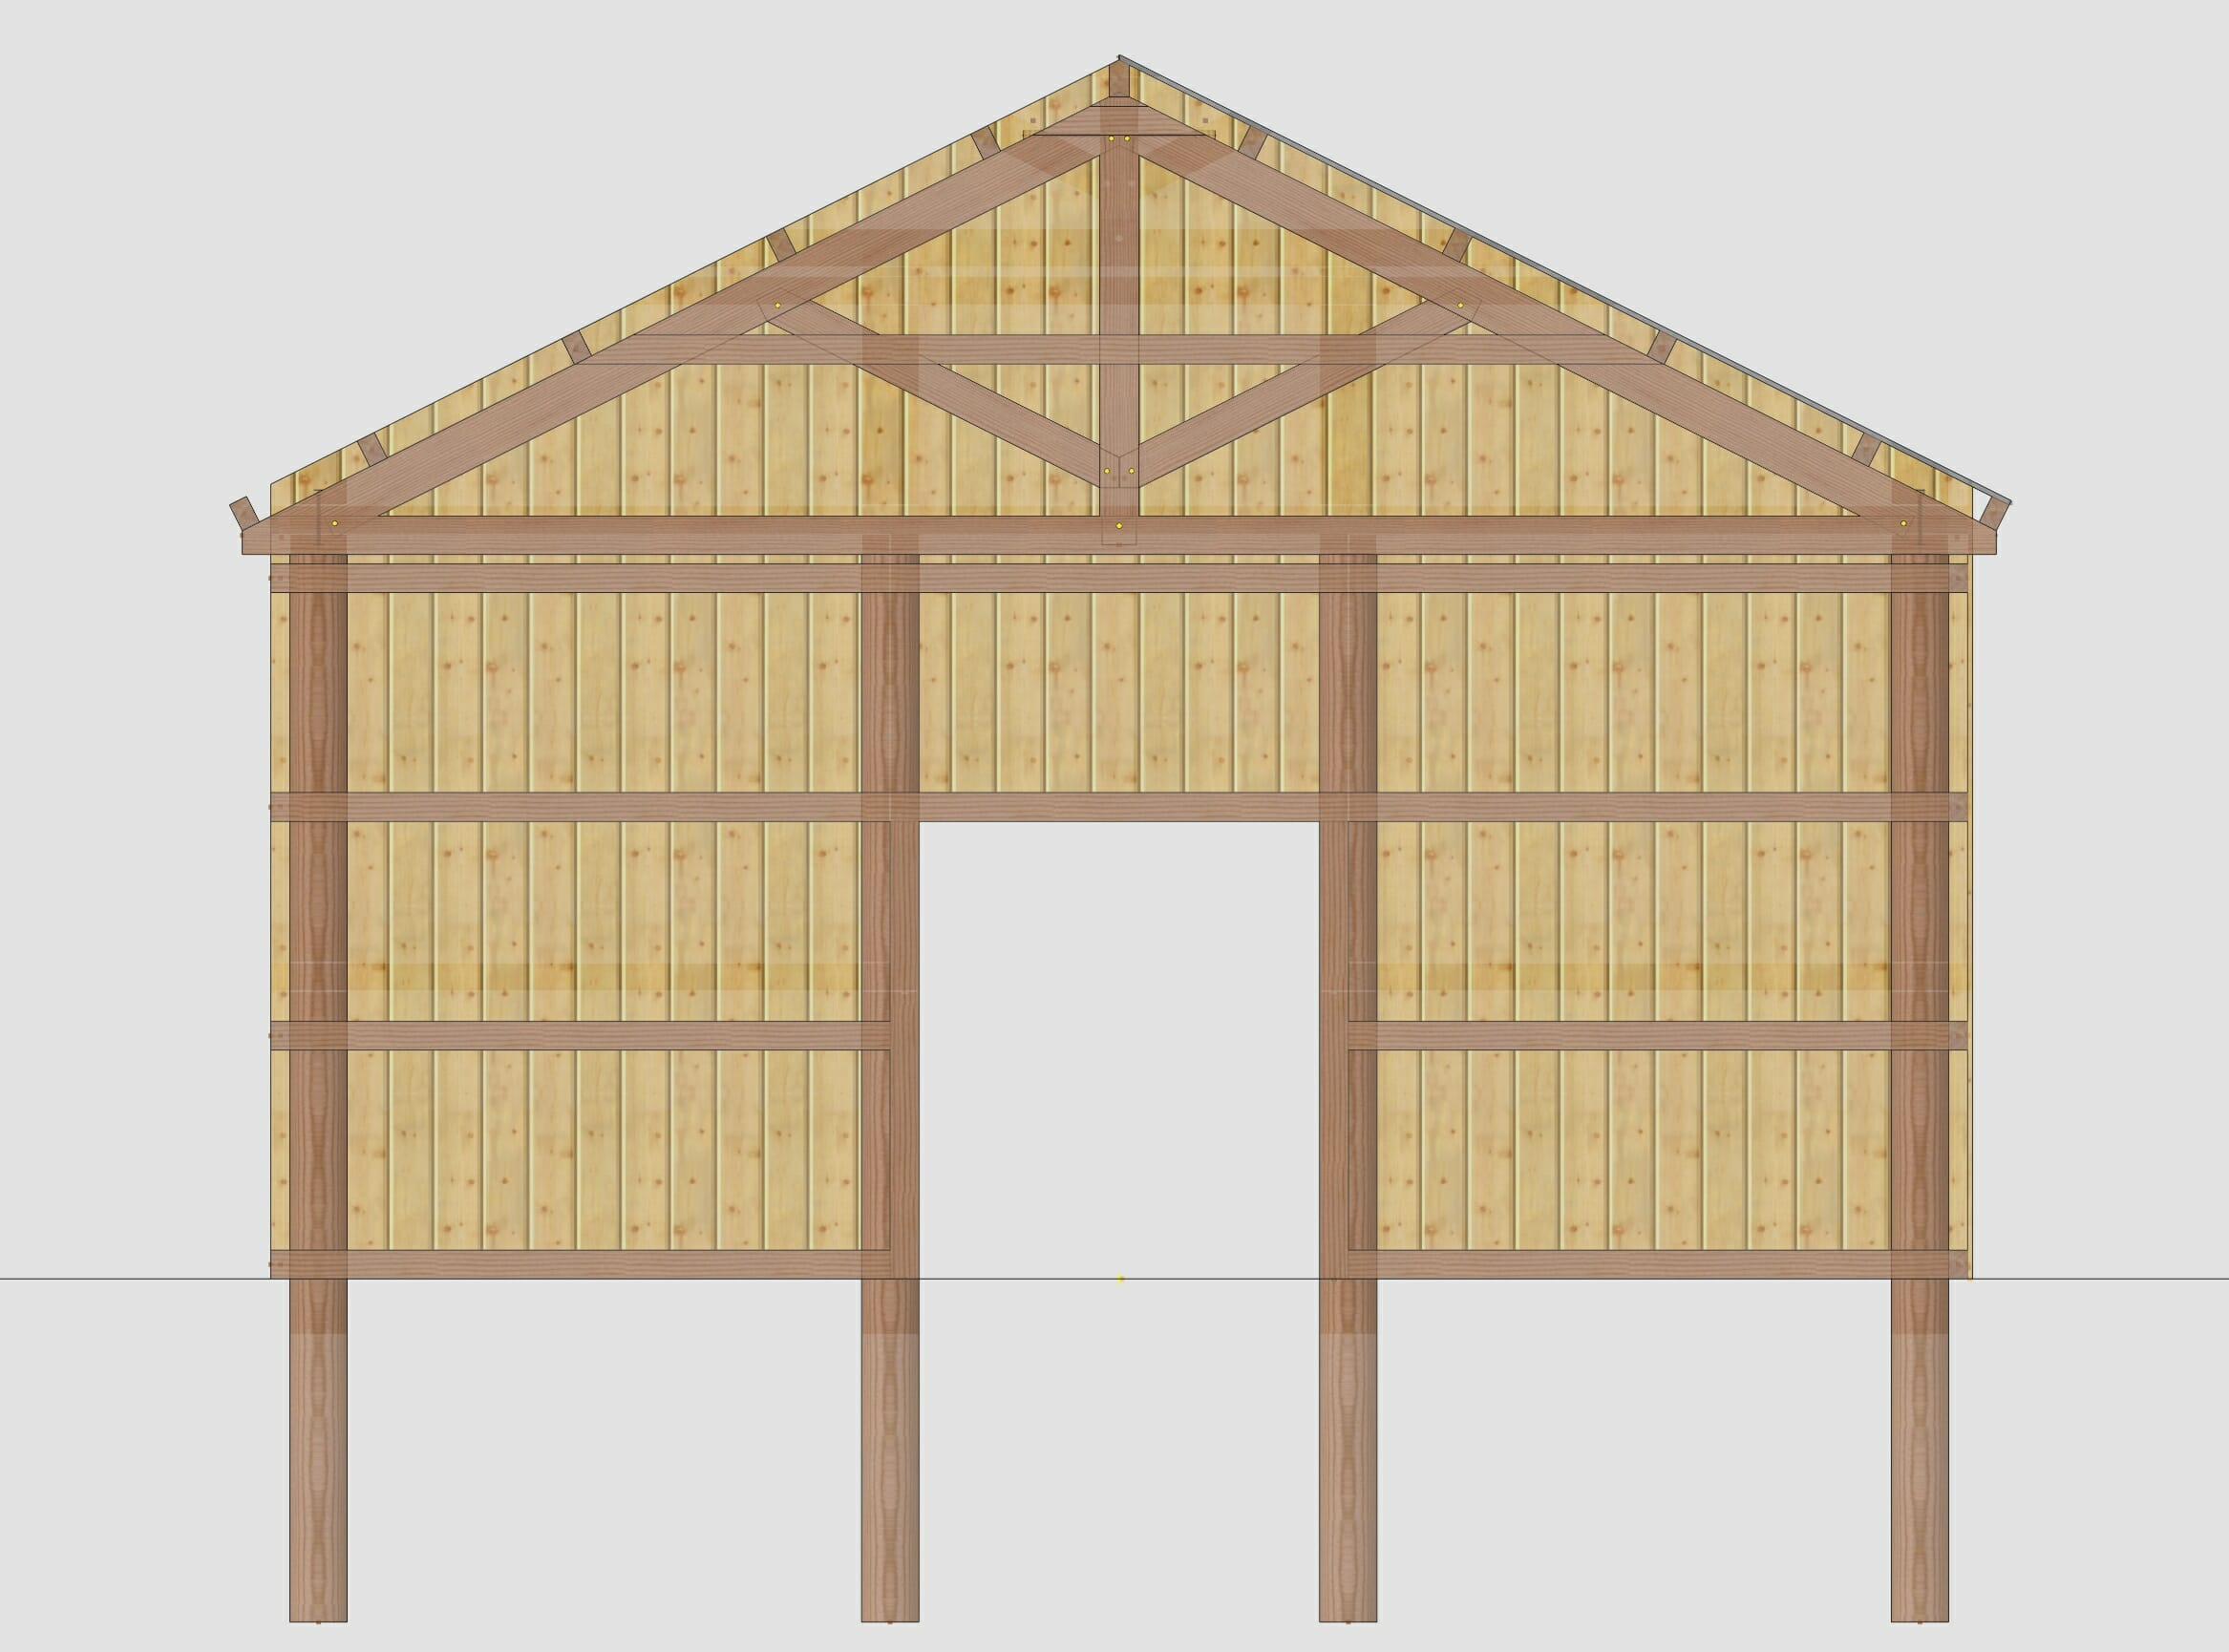 3D Model Showing the Elevation of a Pole Barn